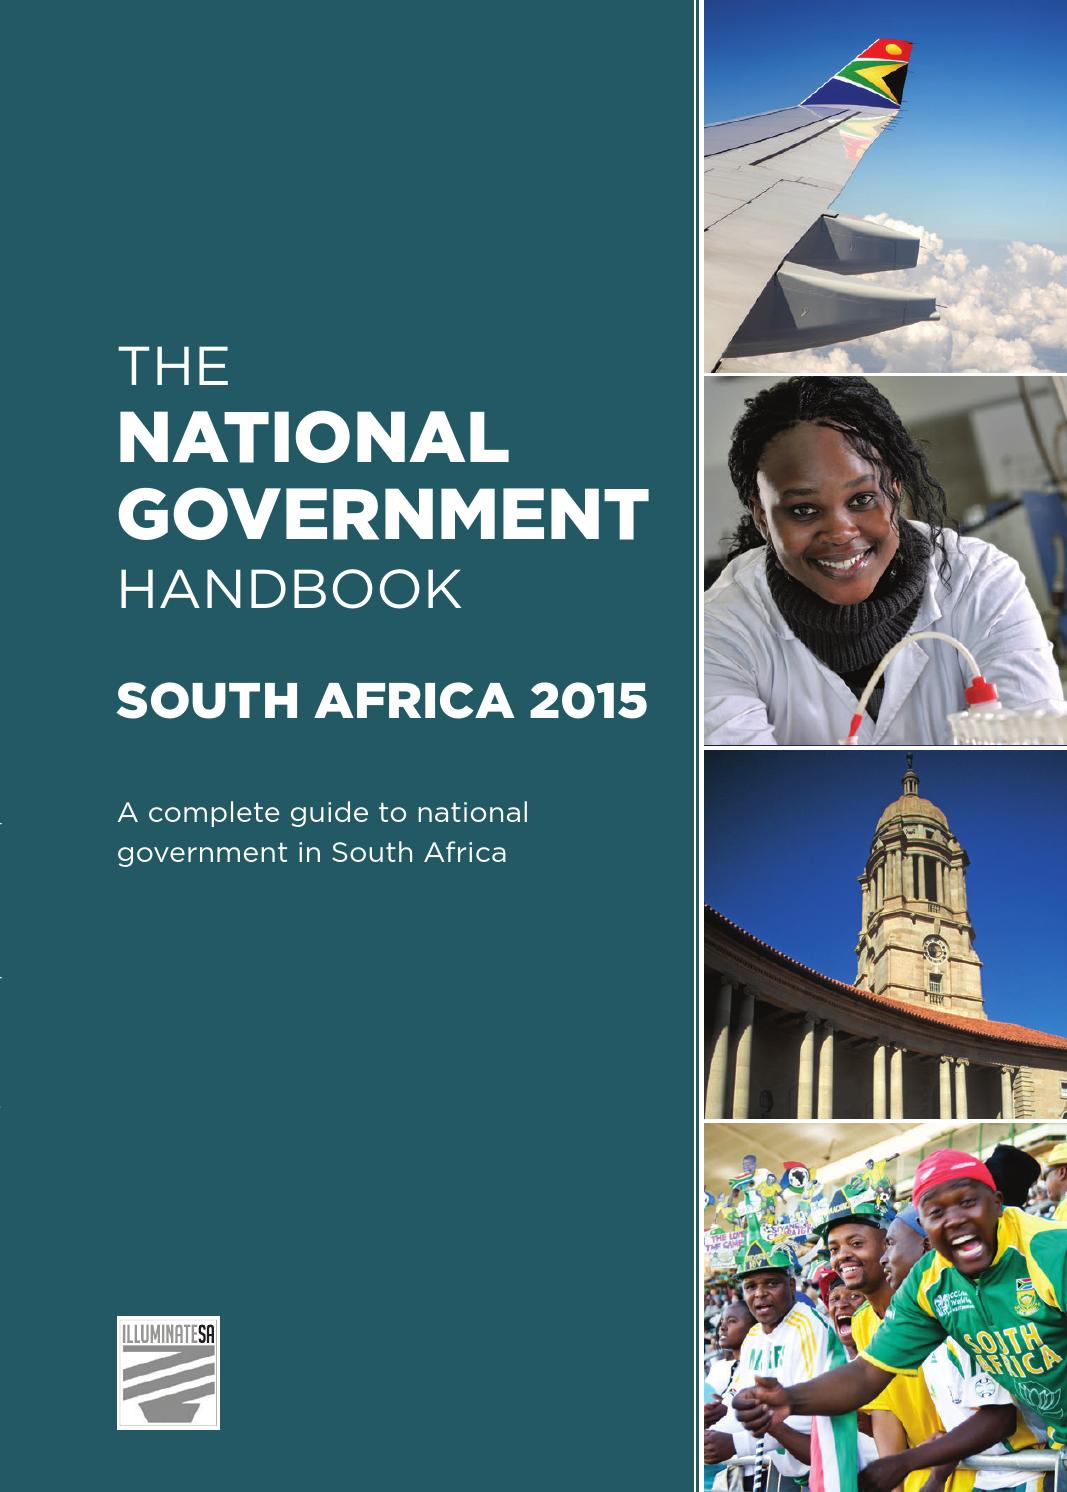 National Government Handbook - South Africa 2015 by Yes